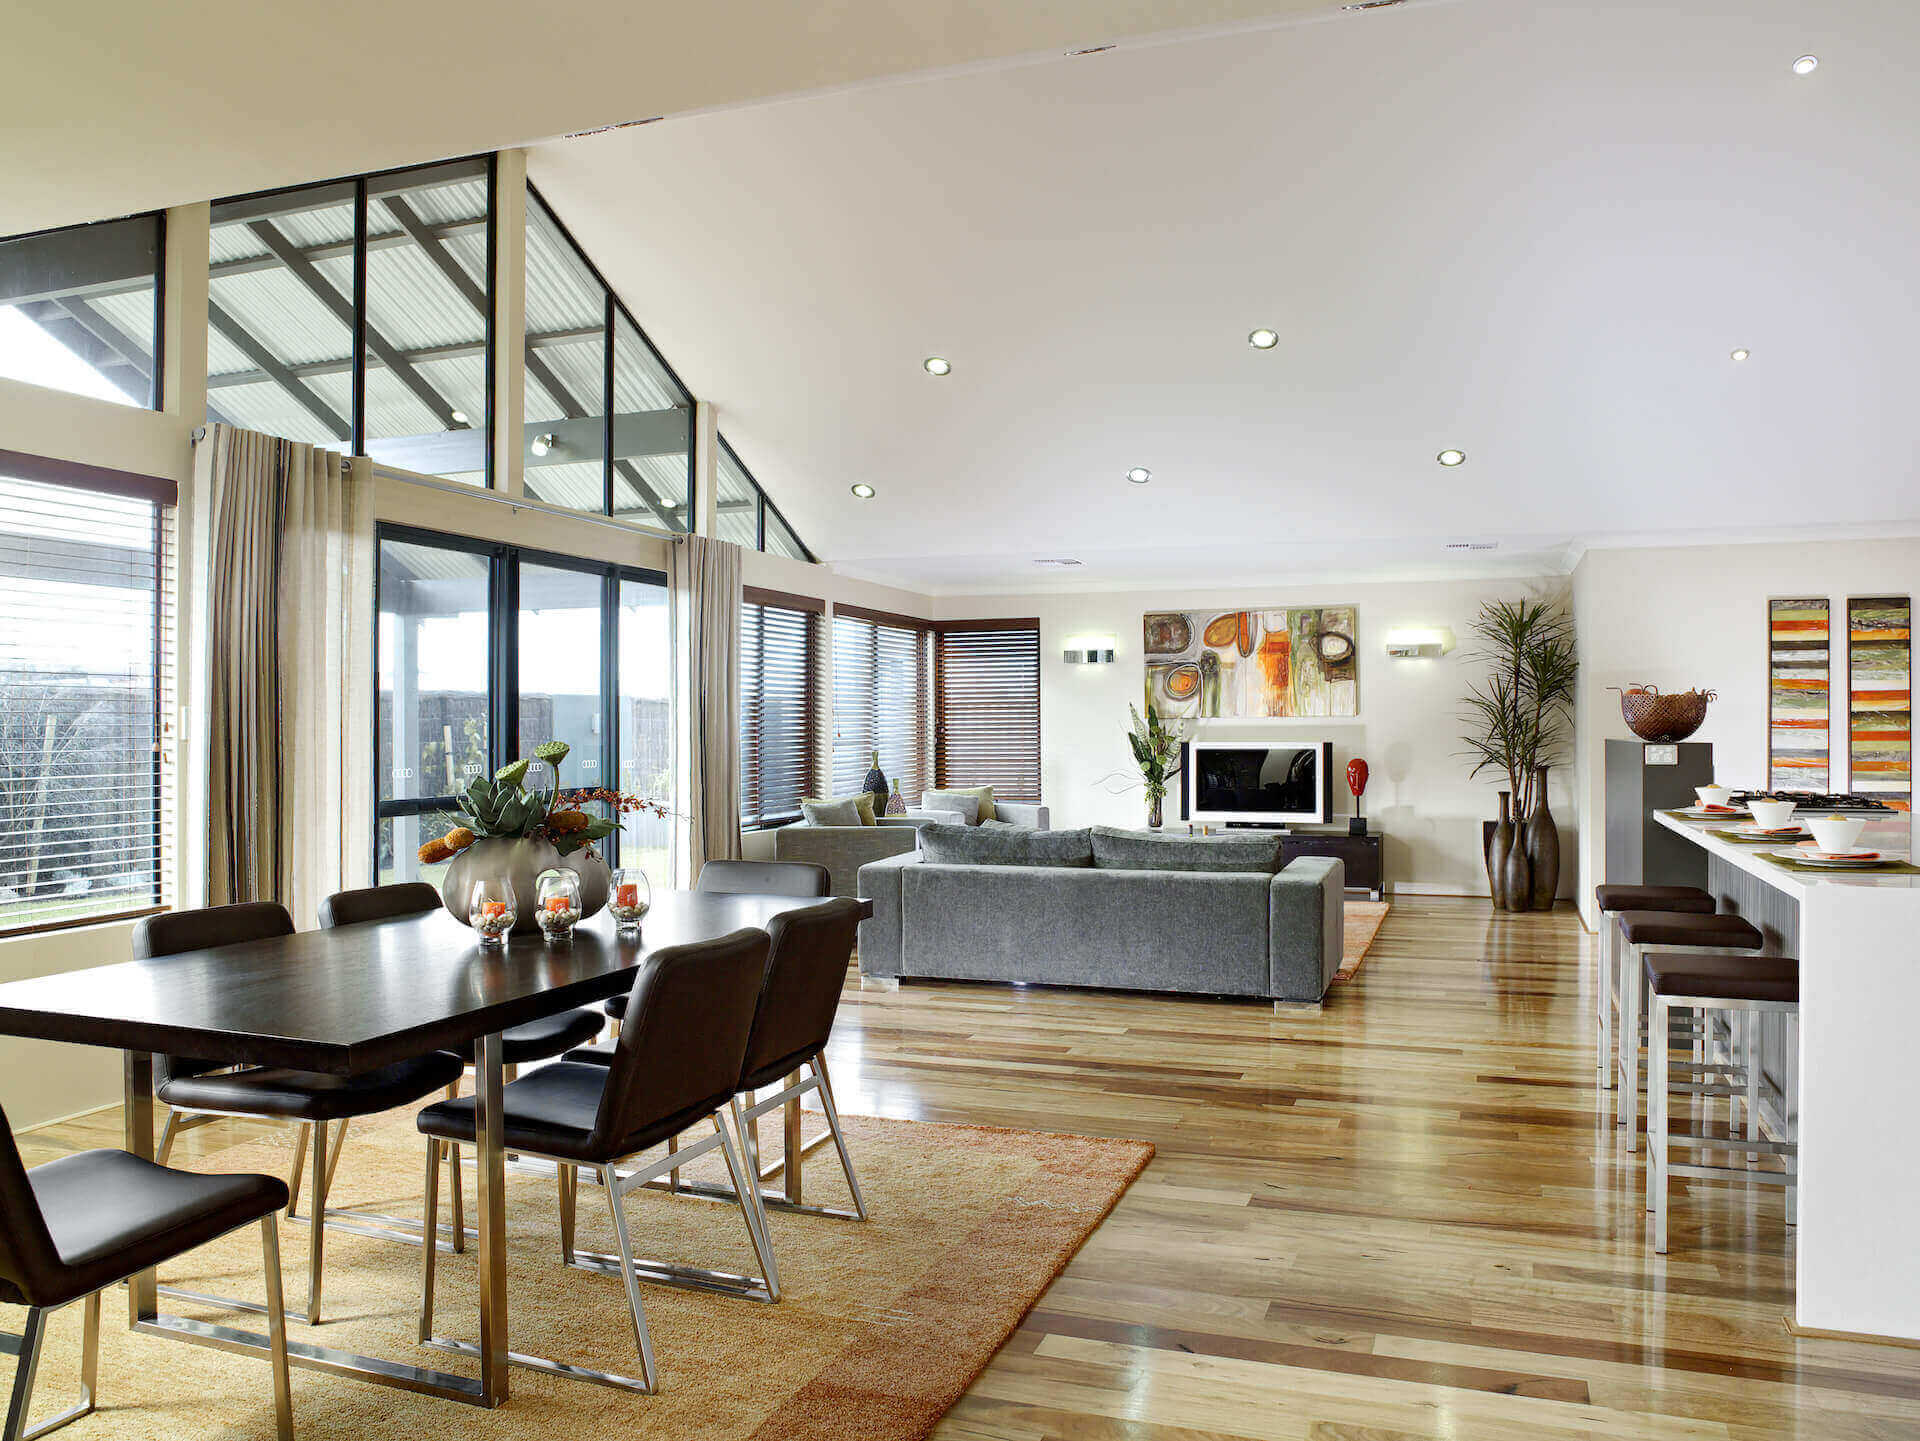 Rural Building Co - The Coastal View - expansive dining room and lounge